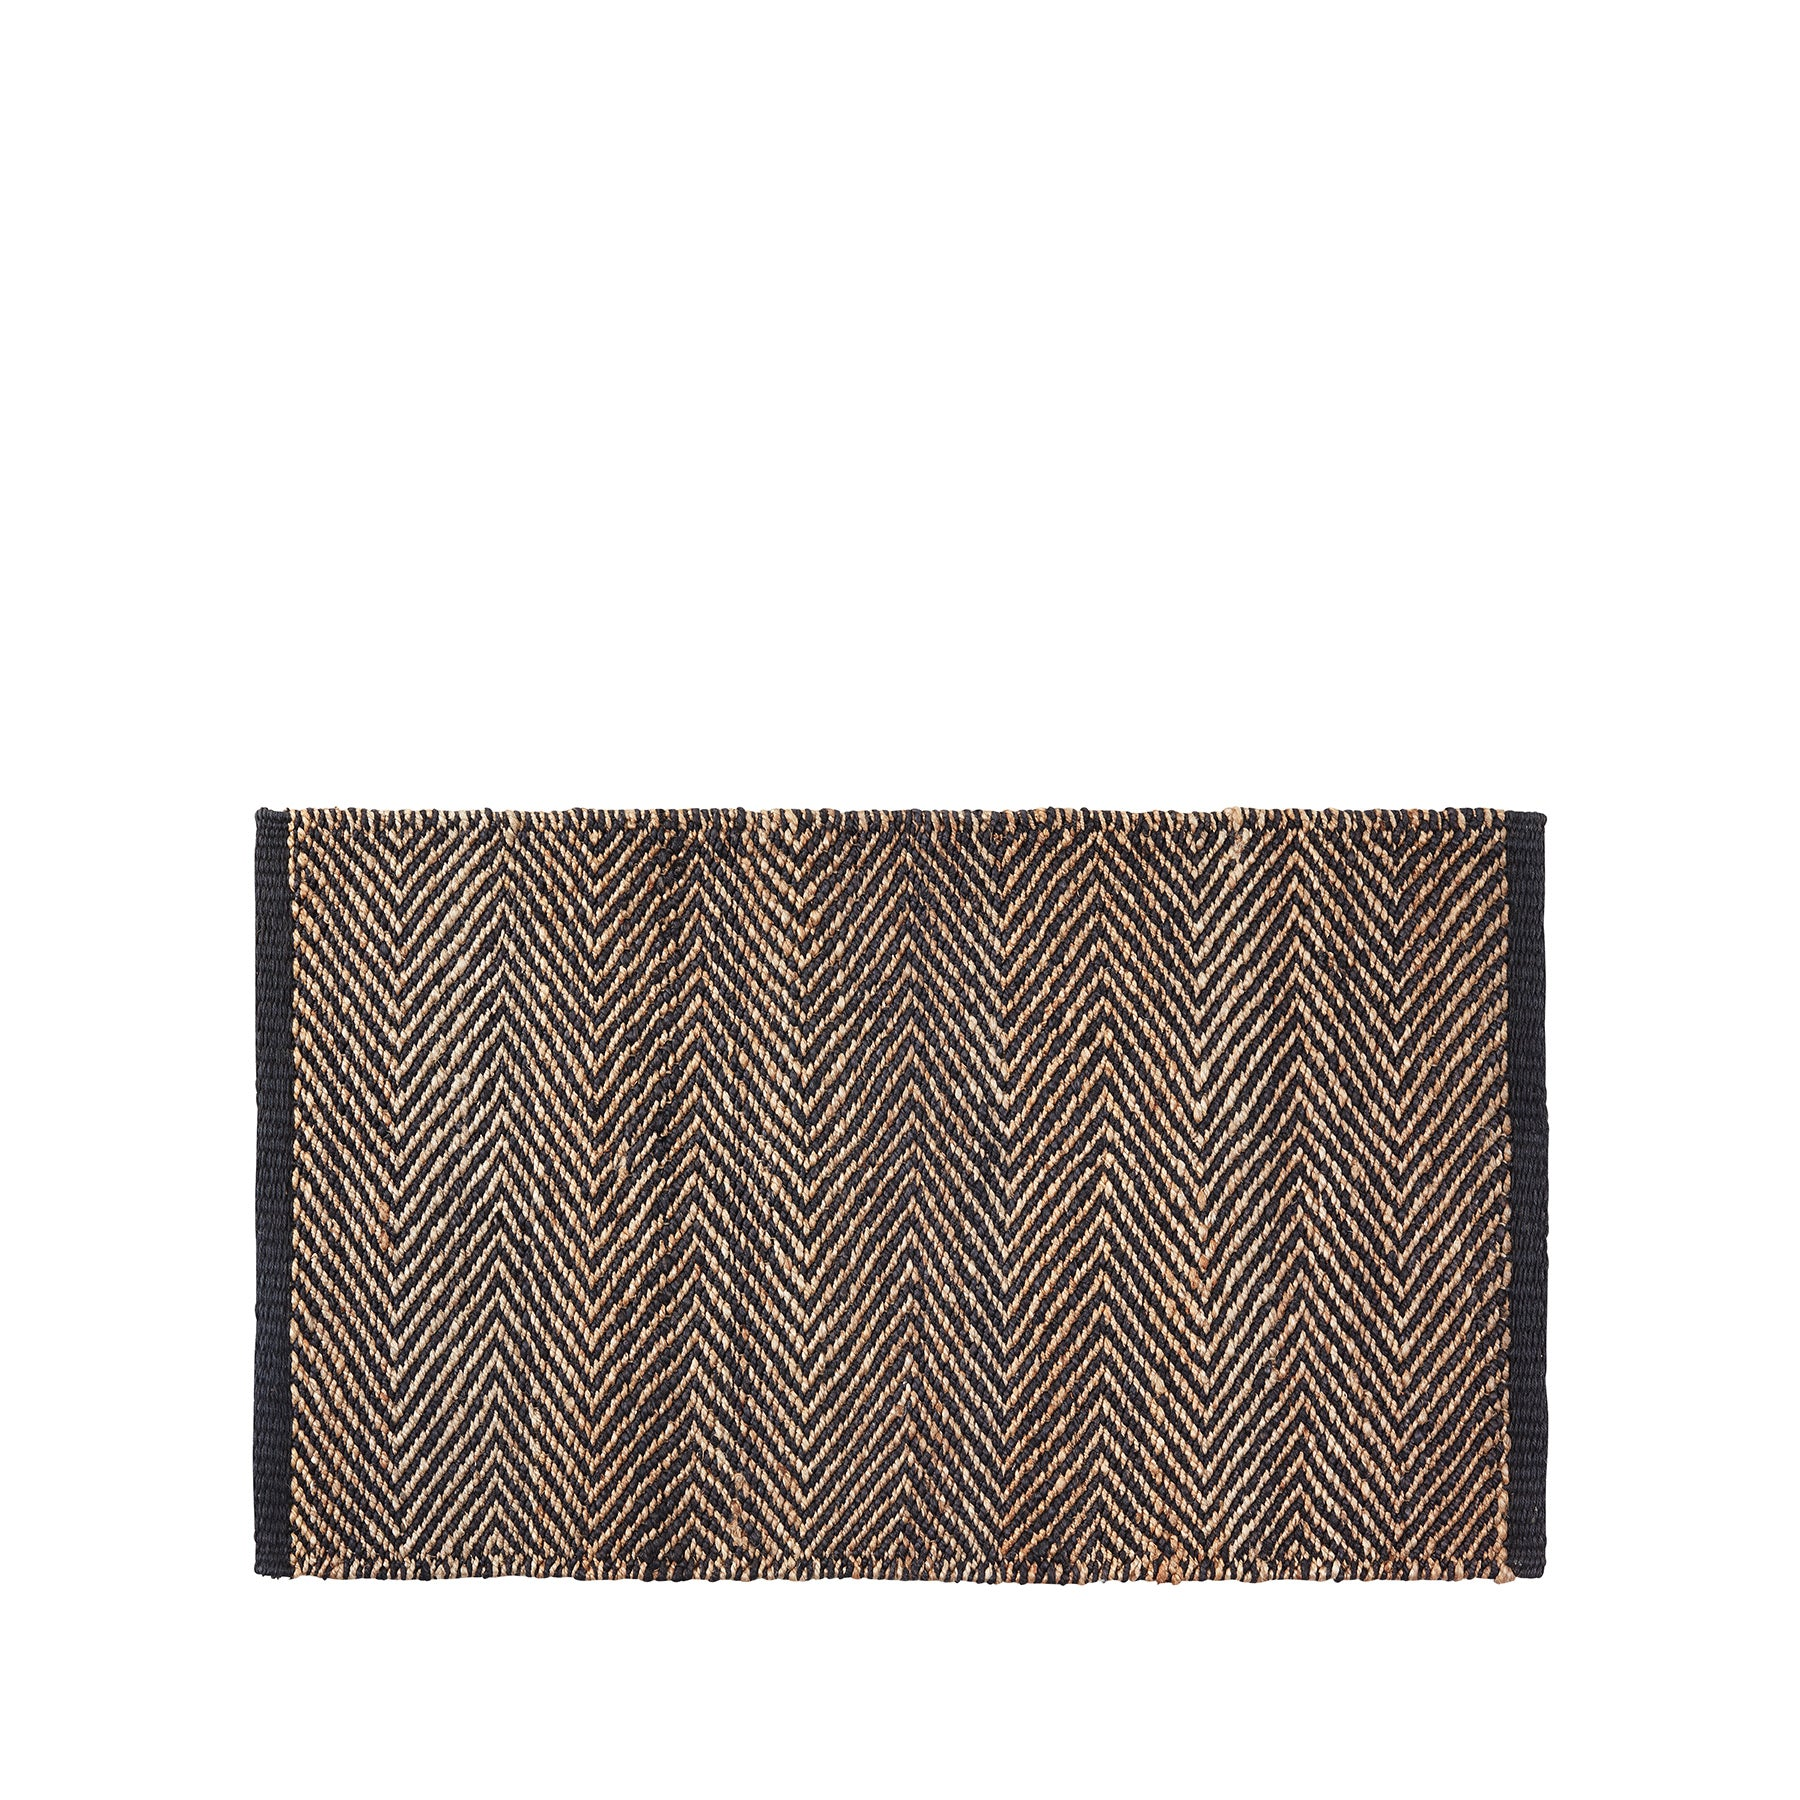 Serengeti Weave Entrance Mat in Charcoal and Natural Zoom Image 1